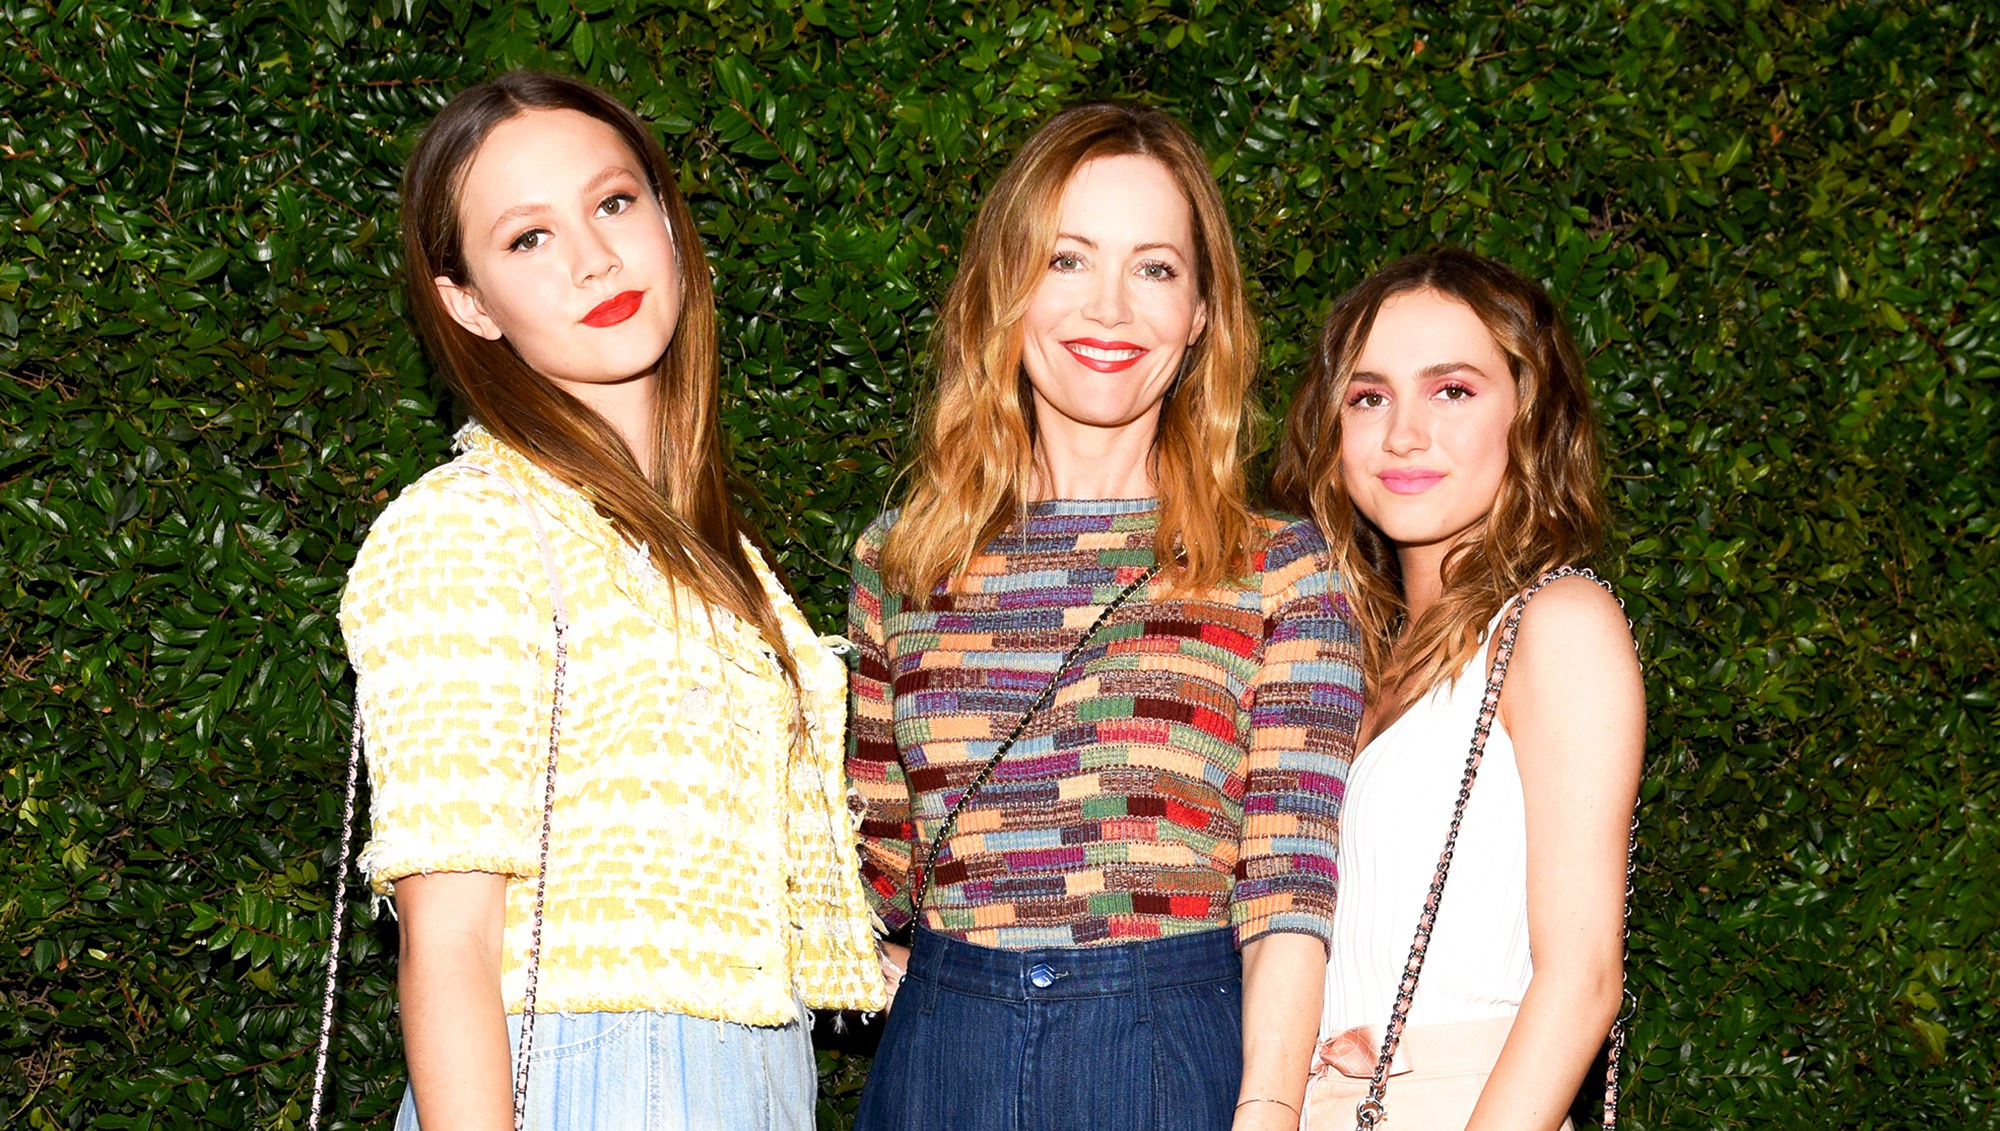 Leslie Mann, Iris Apatow and Maude Apatow